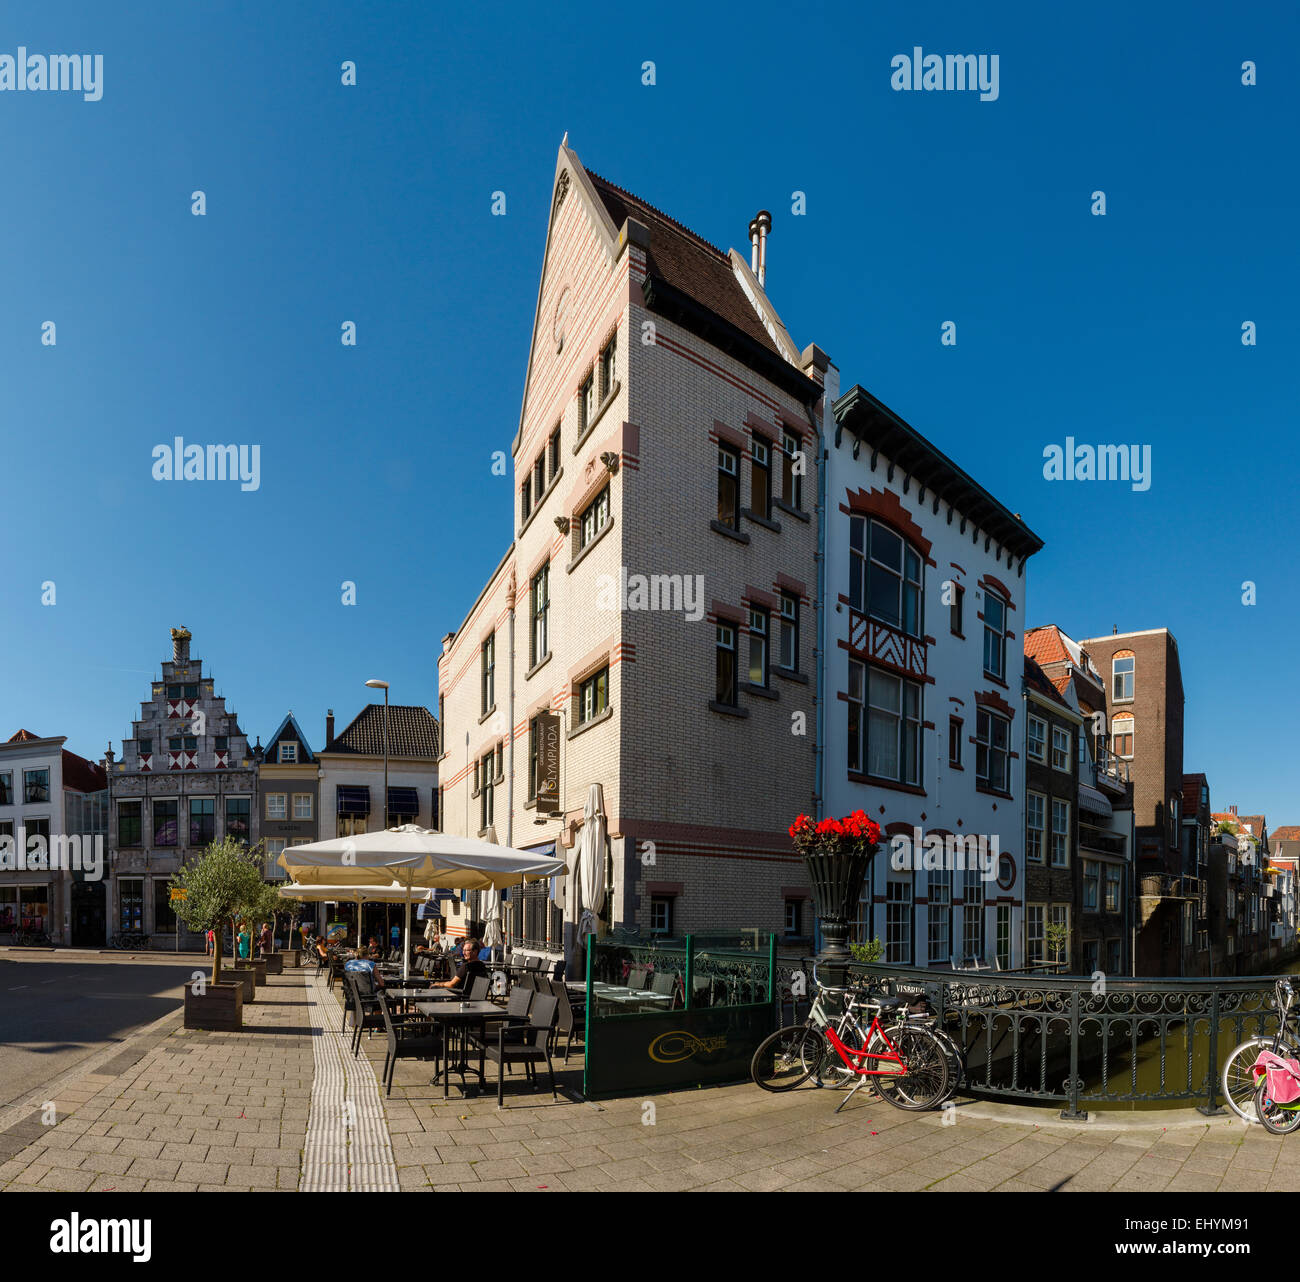 Netherlands, Holland, Europe, Dordrecht, styles, architecture, city, village, summer, - Stock Image